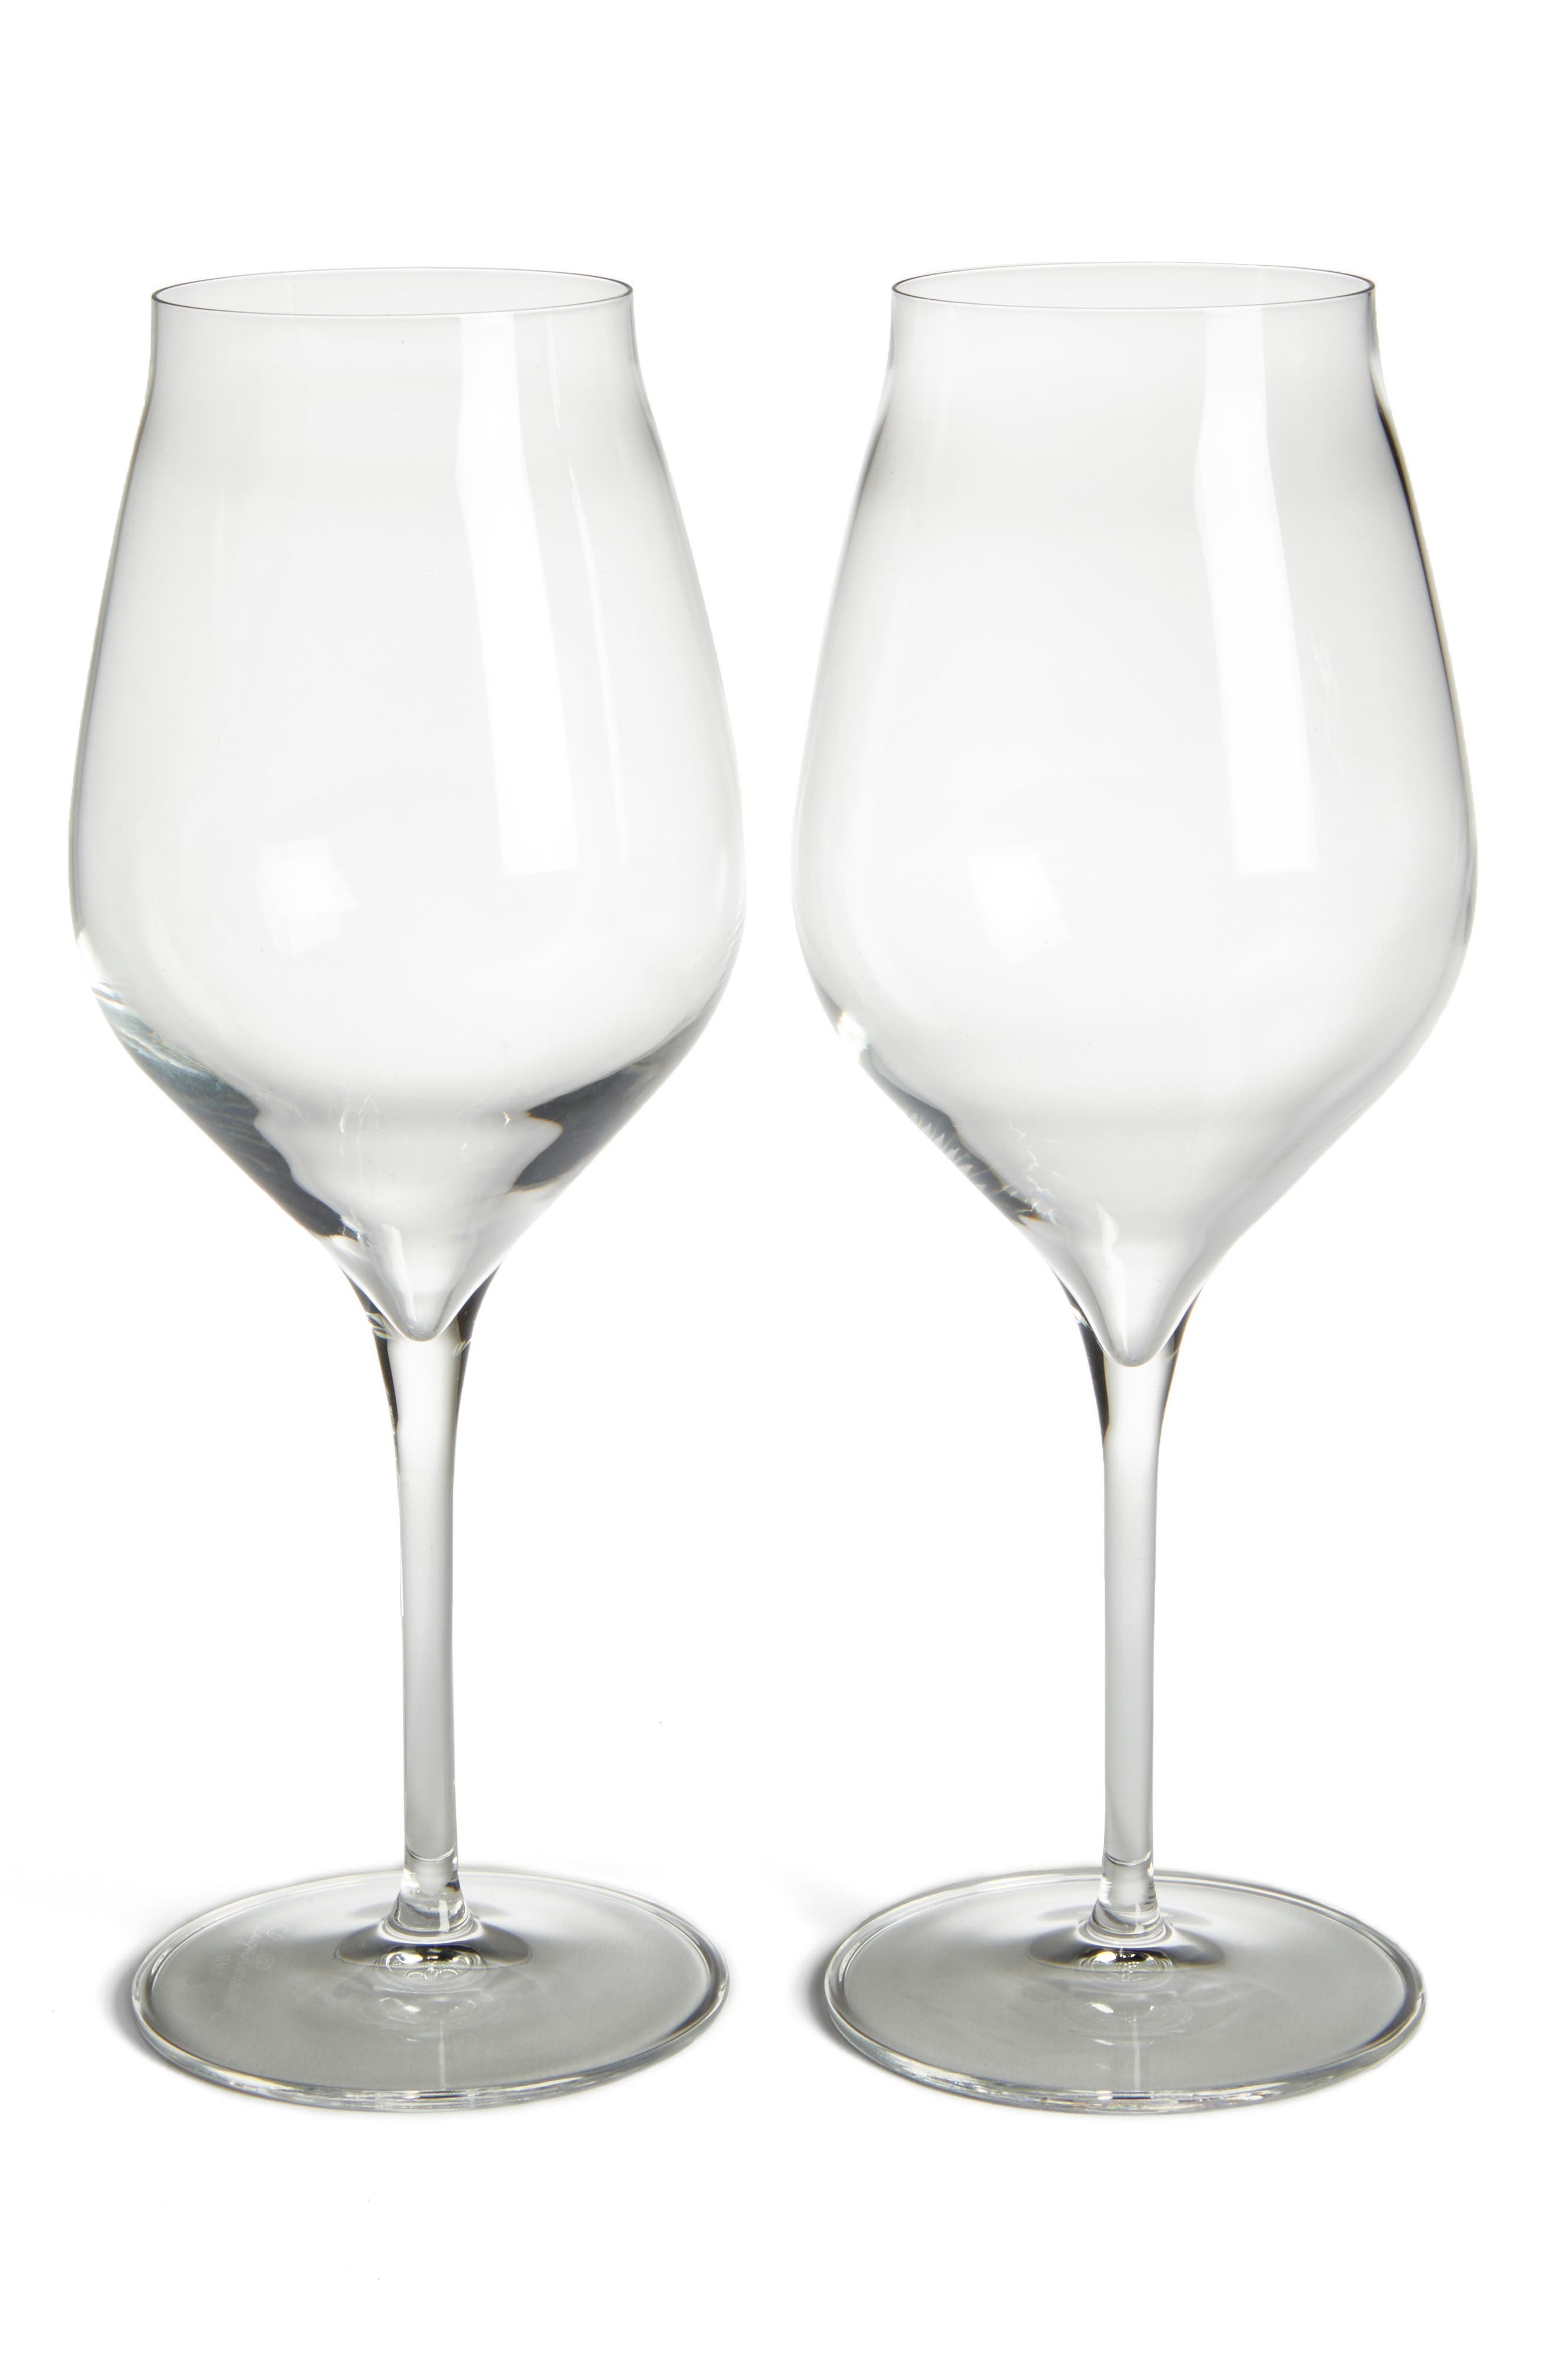 Luigi Bormiolo Vinea Cannonau Set of 2 Red Wine Glasses